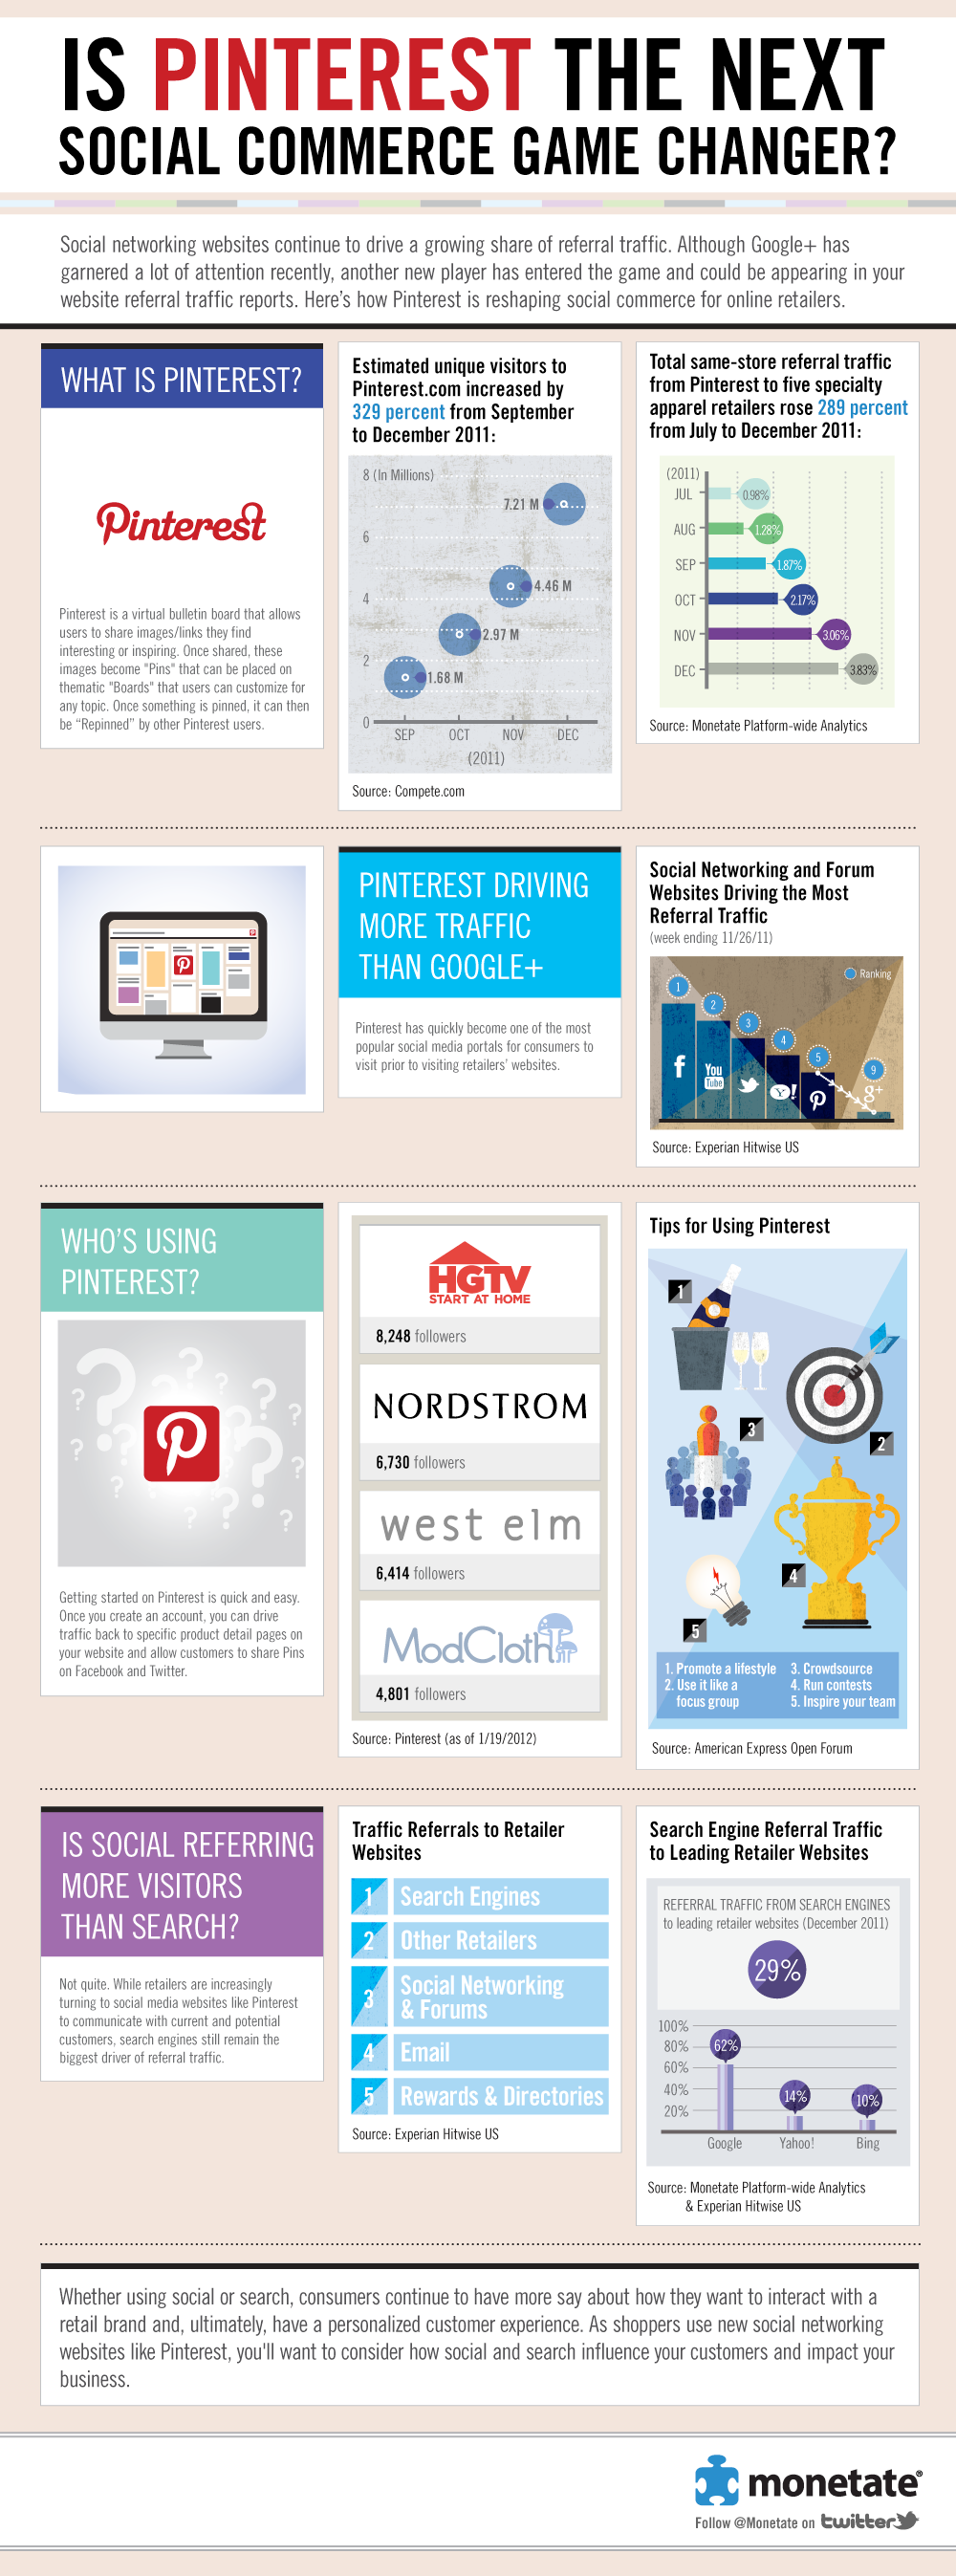 Pinterest Is It The Next Social Commerce Game Changer?